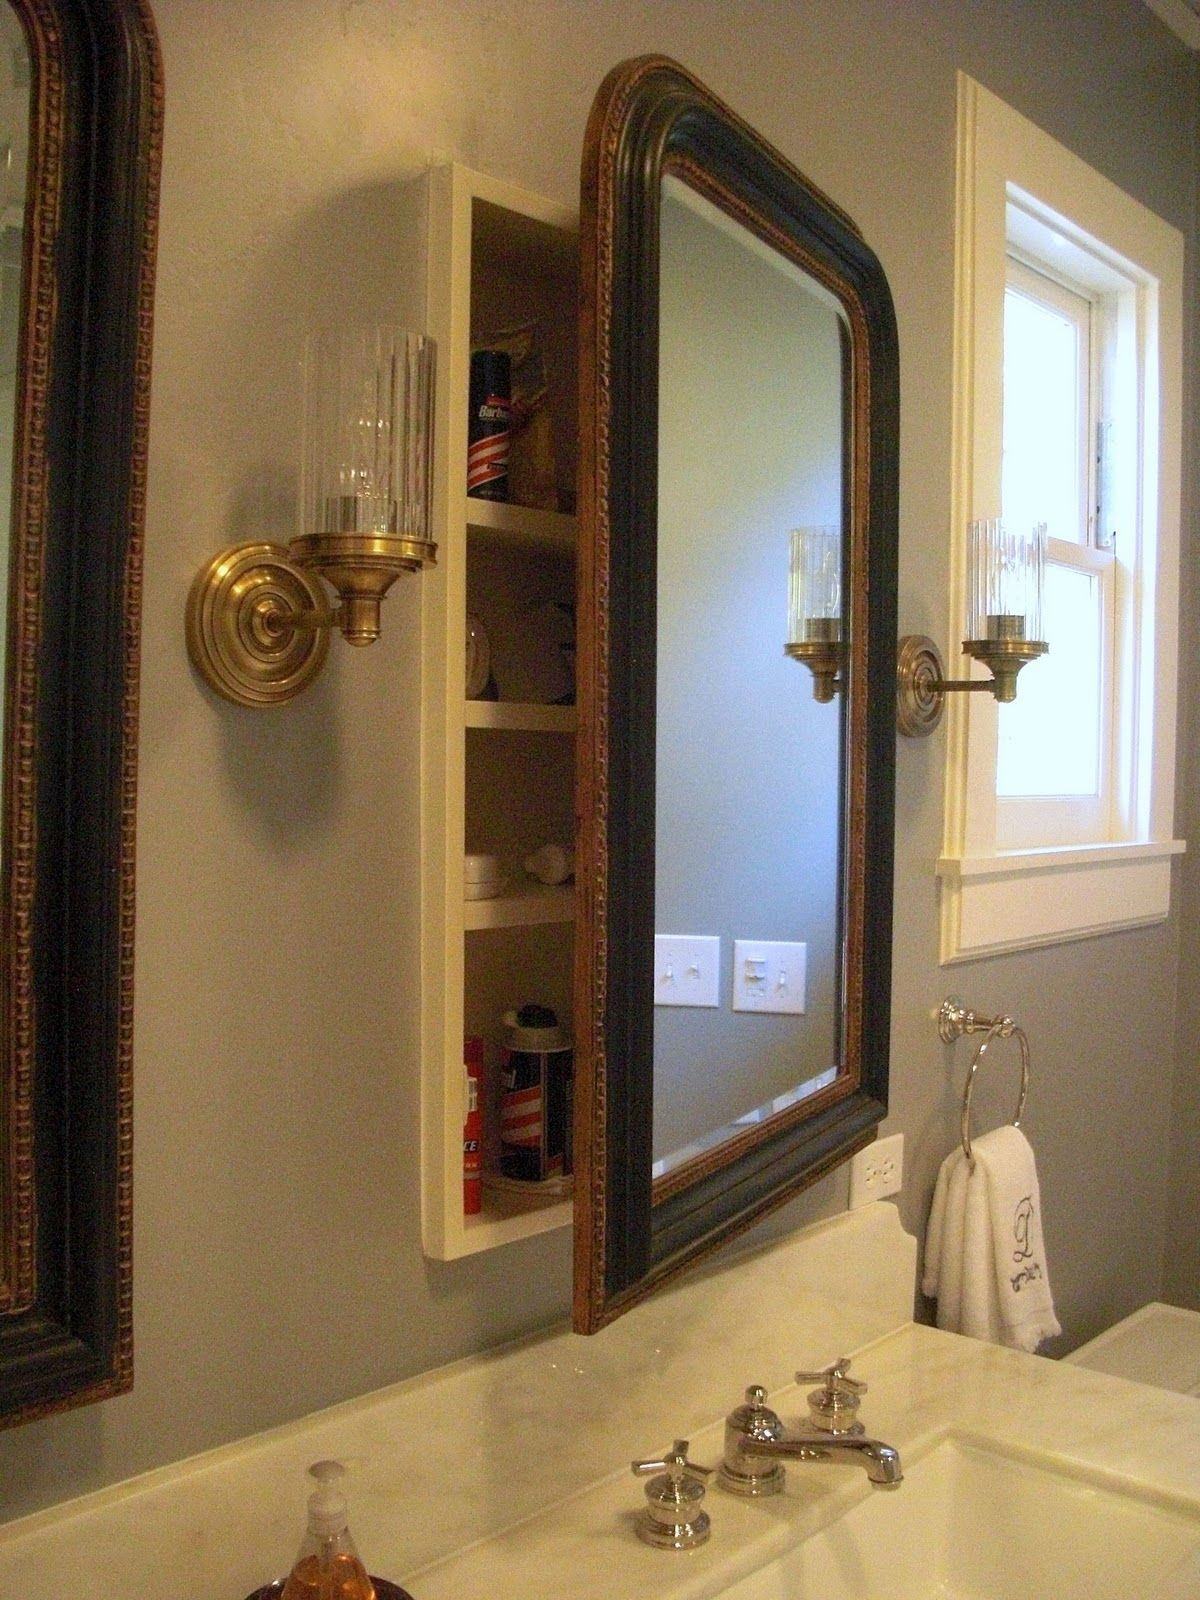 Restoration Hardware Mirrors Over Medicine Cabinets Love This